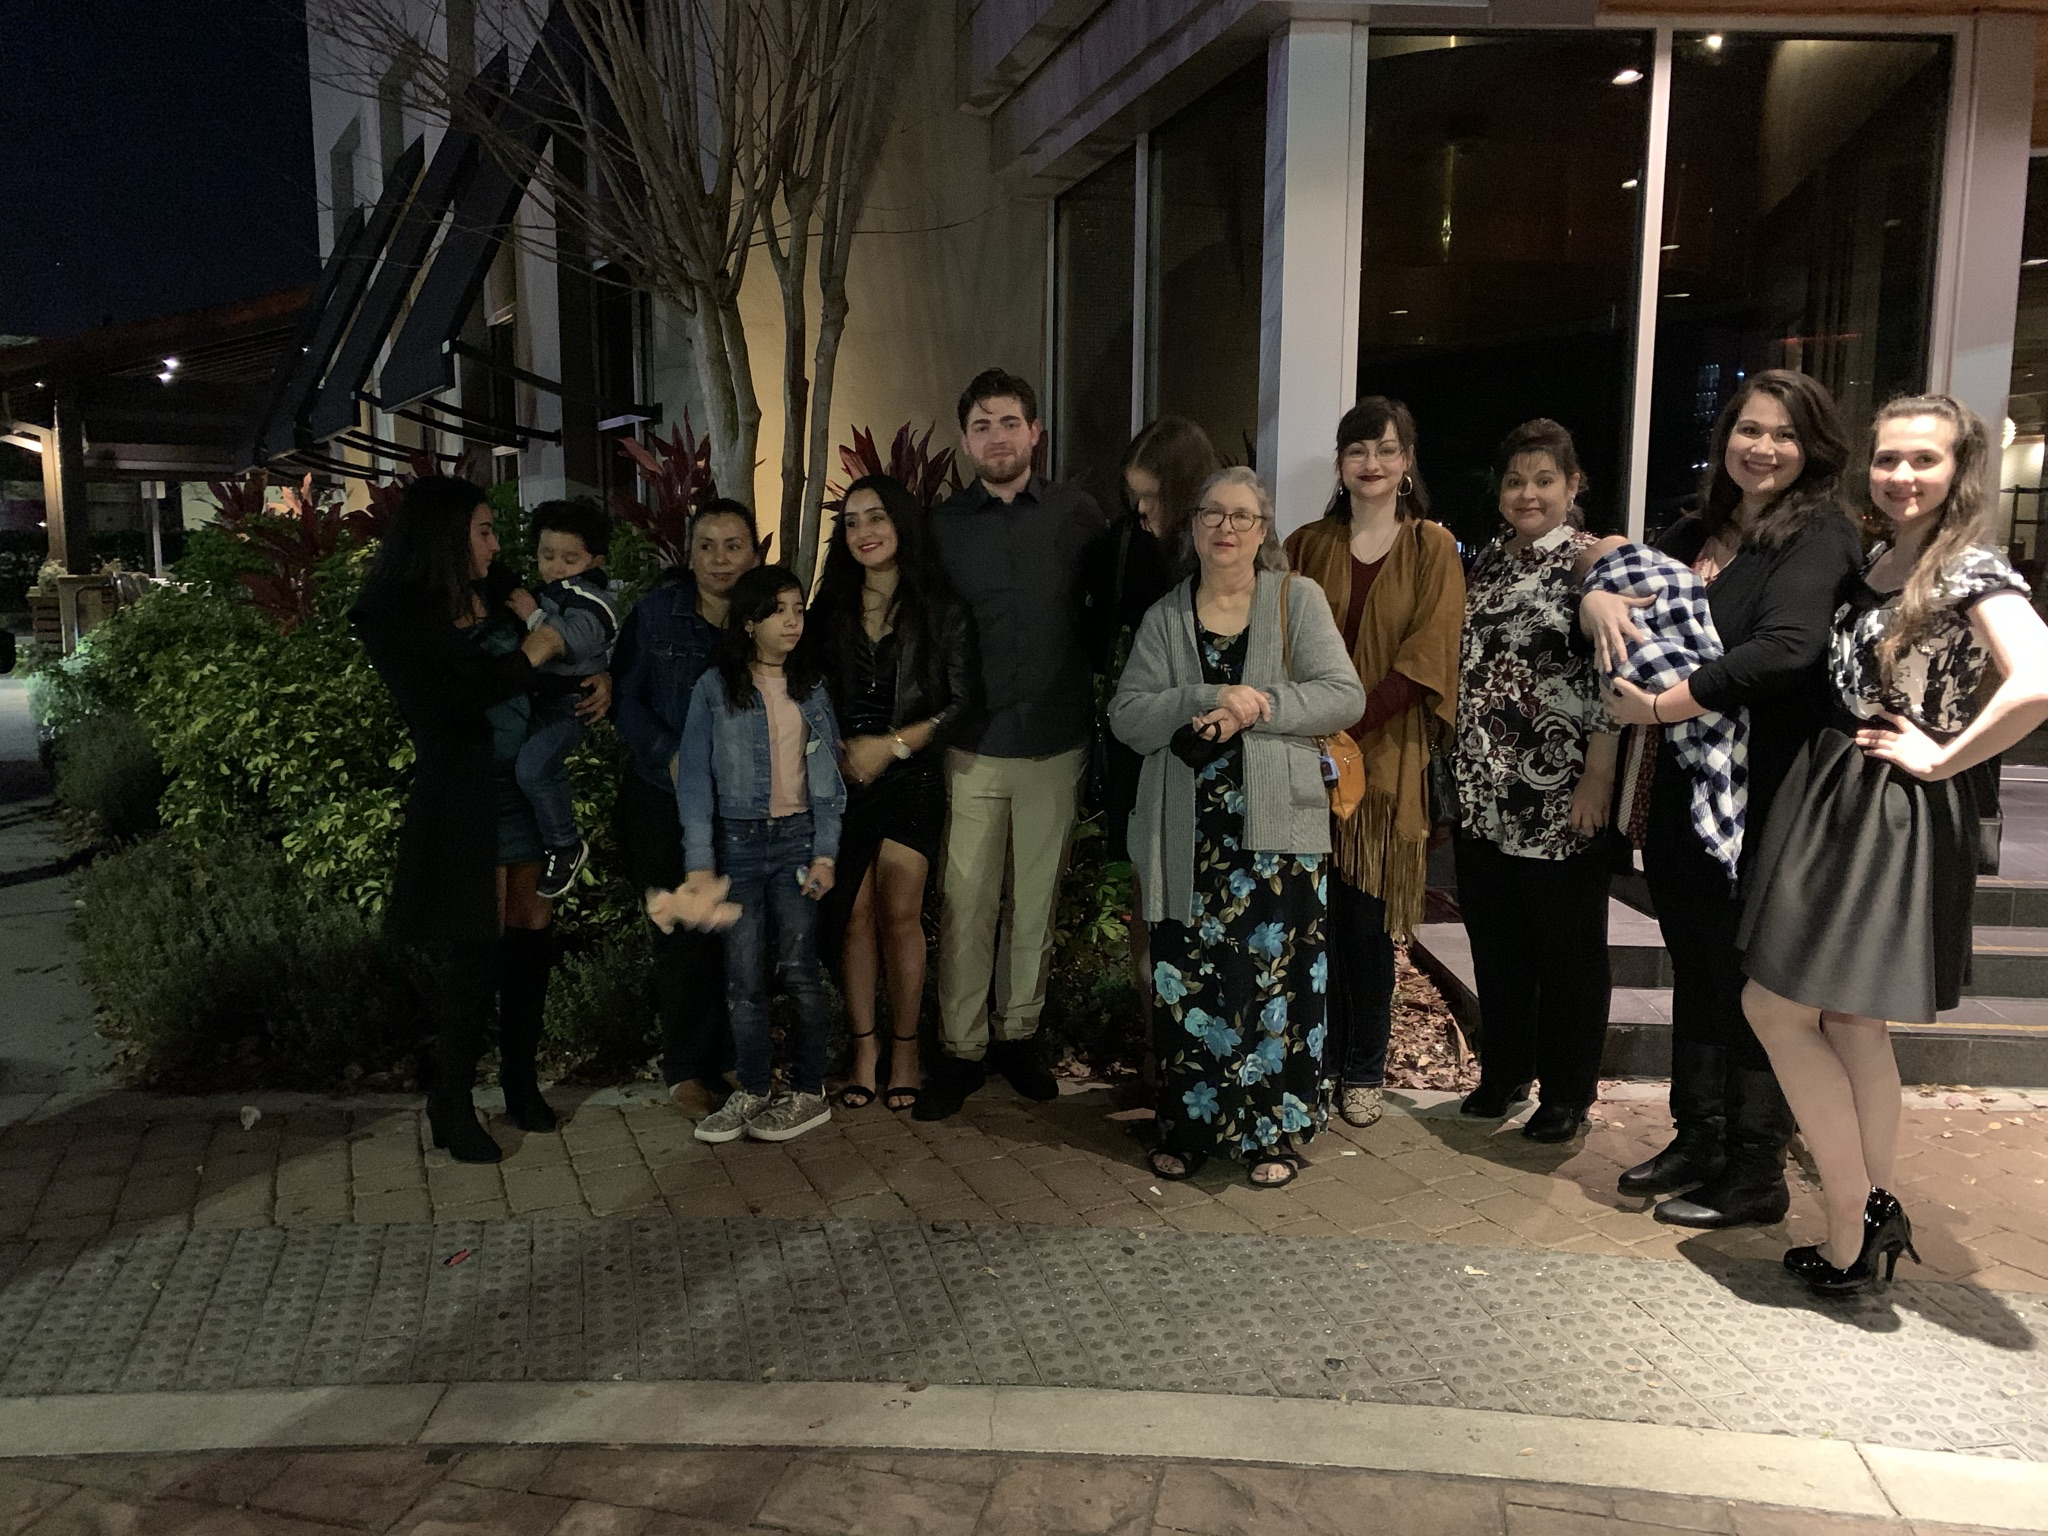 large family stands together for picture outside of building at night on sidewalk